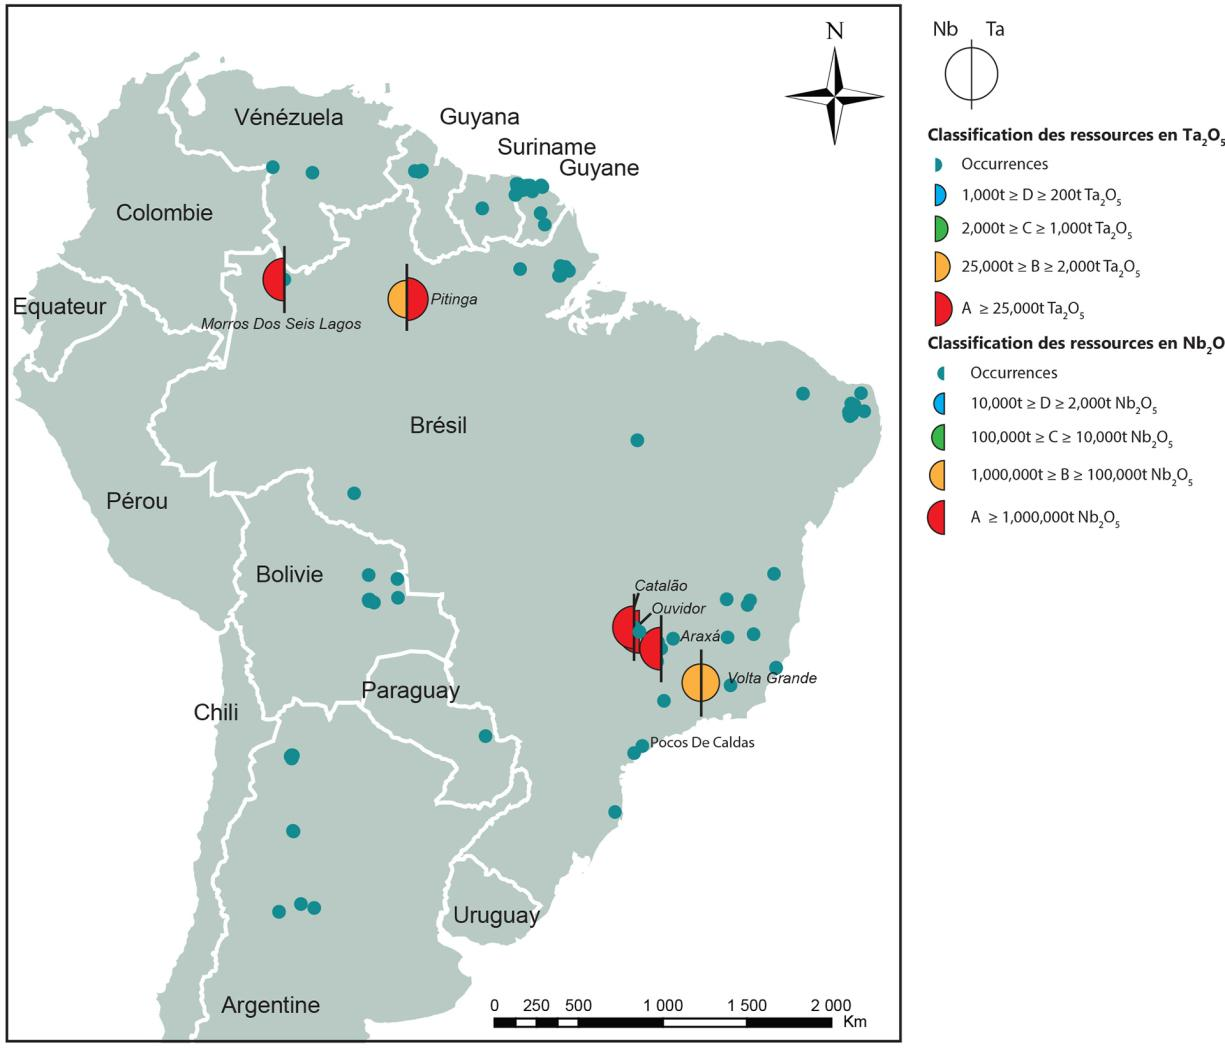 Distribution of the different tantalum and niobium occurrences and deposits in South America